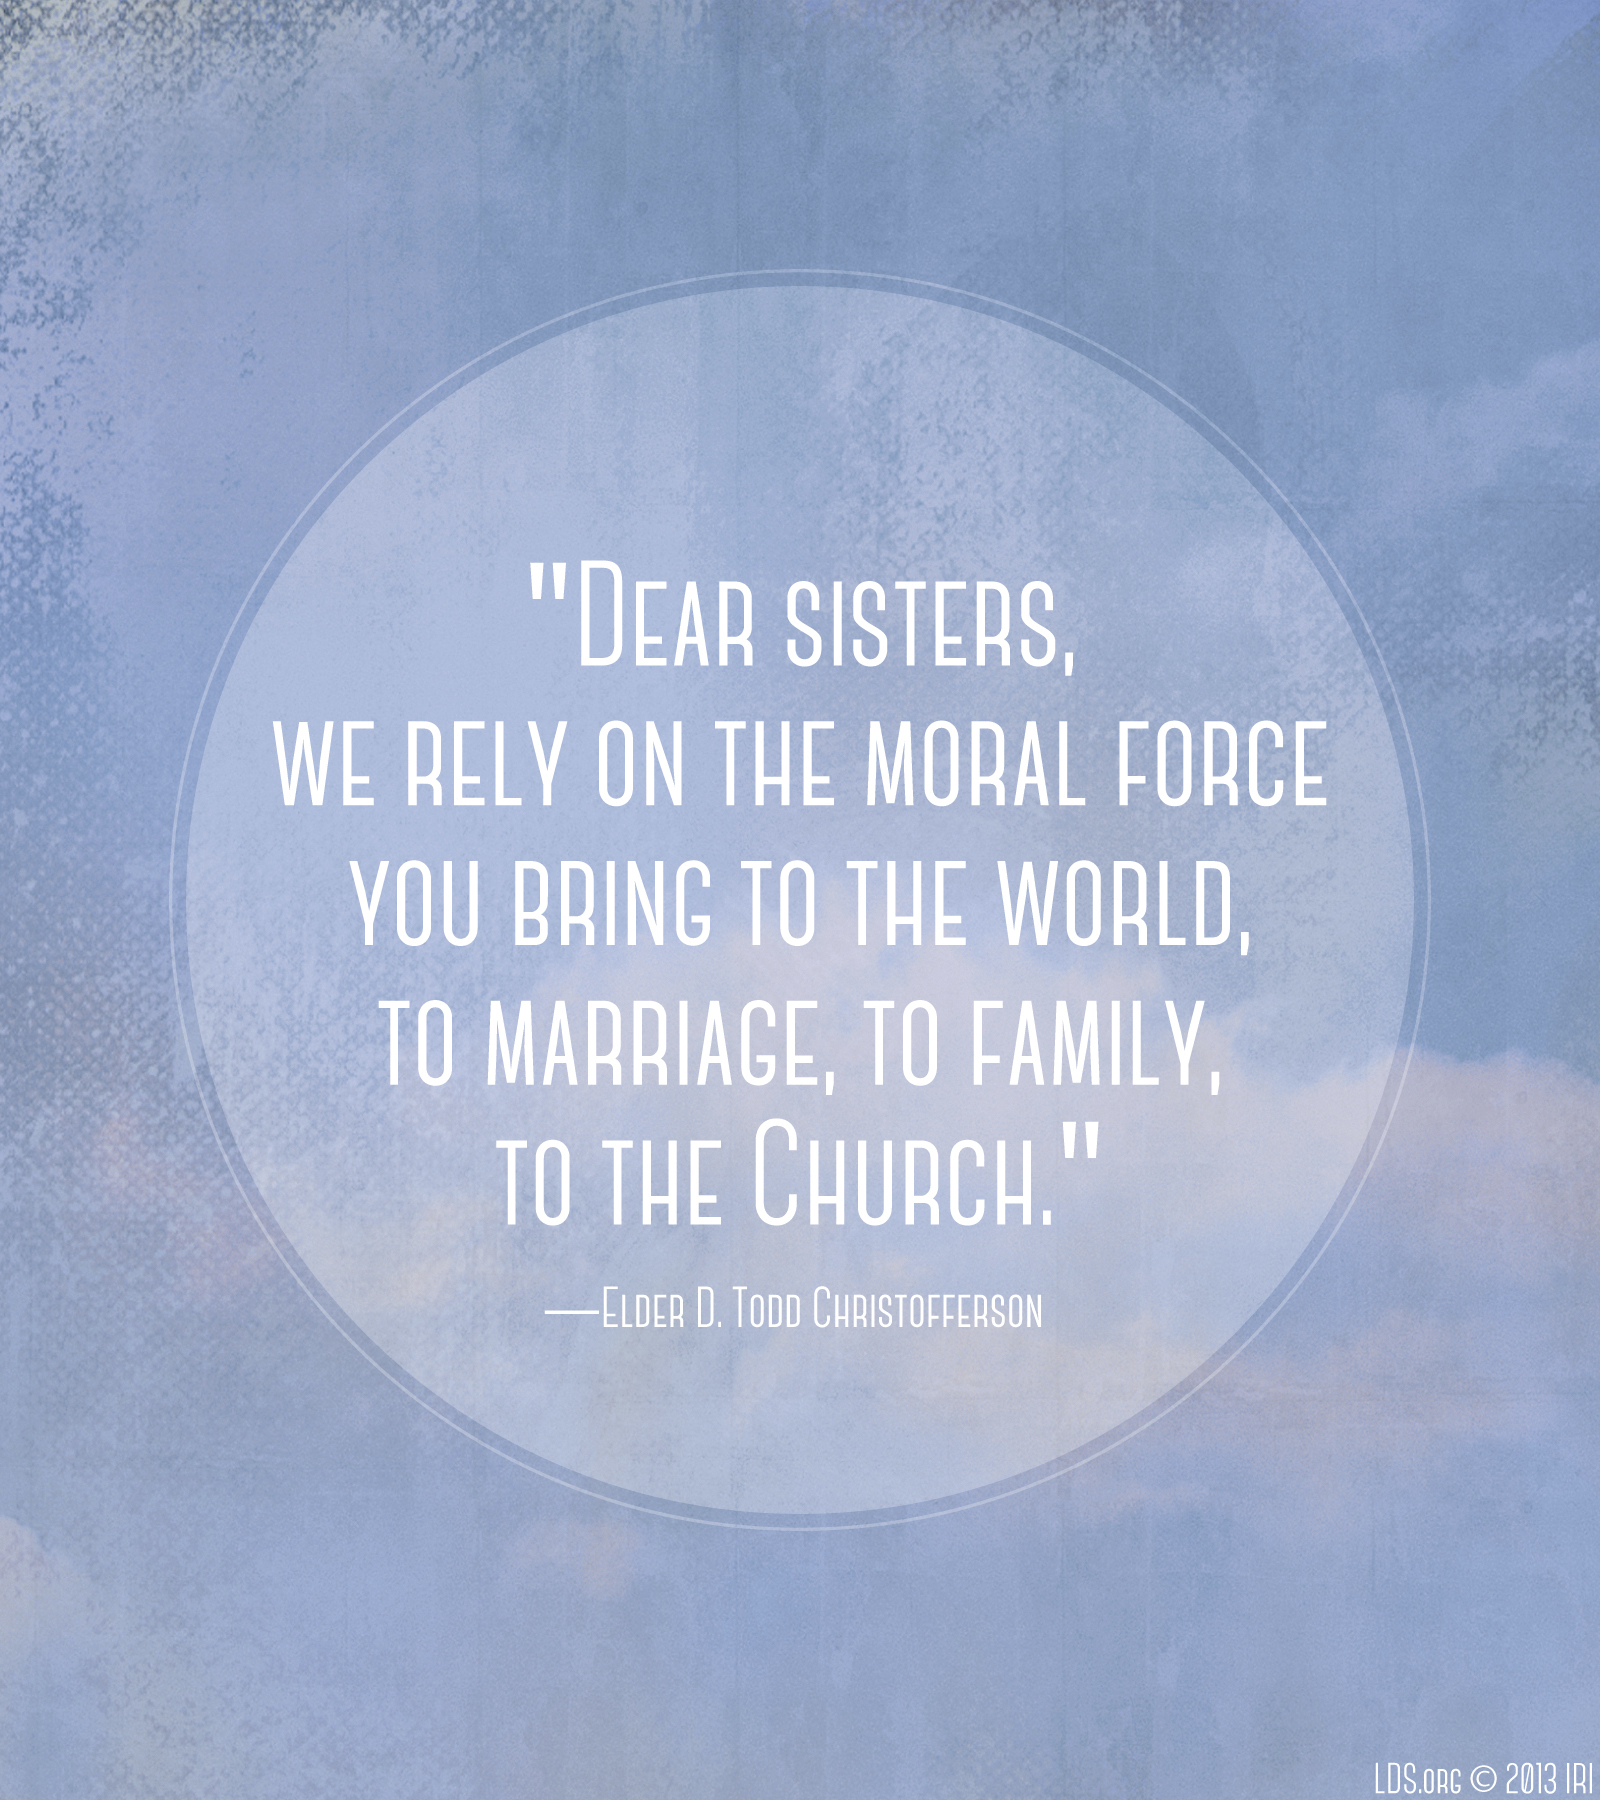 """Dear sisters, we rely on the moral force you bring to the world, to marriage, to family, to the Church.""—Elder D. Todd Christofferson, ""The Moral Force of Women"""